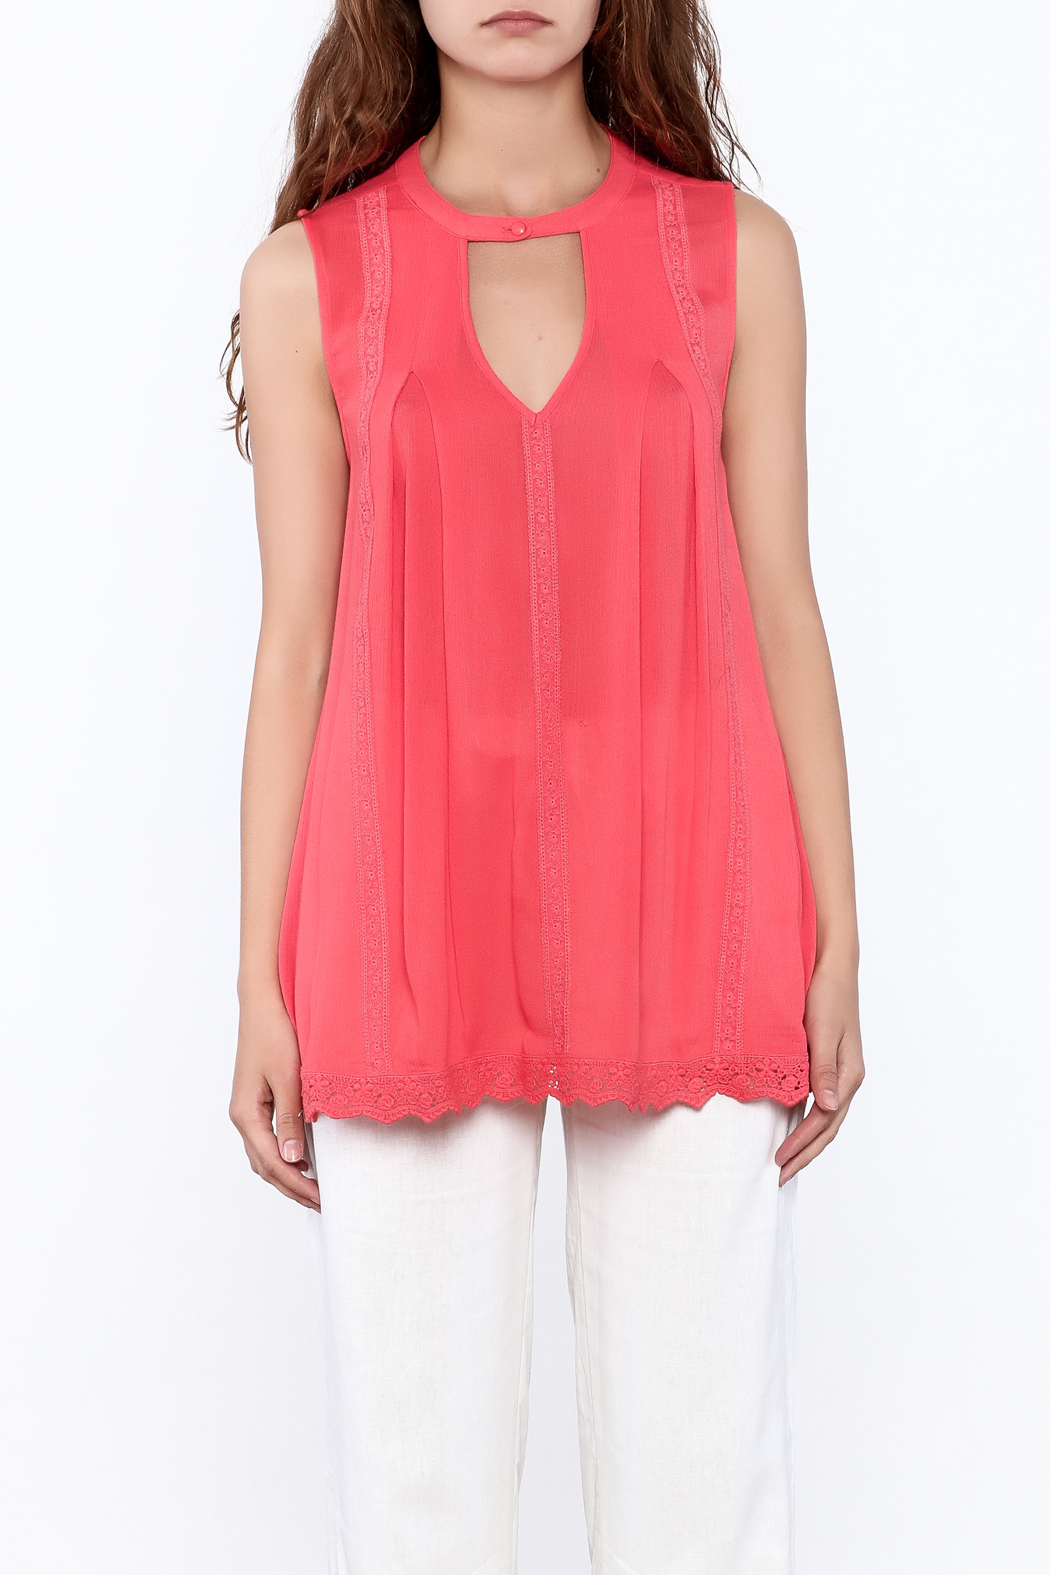 Blu Pepper Coral Sleeveless Top - Front Full Image